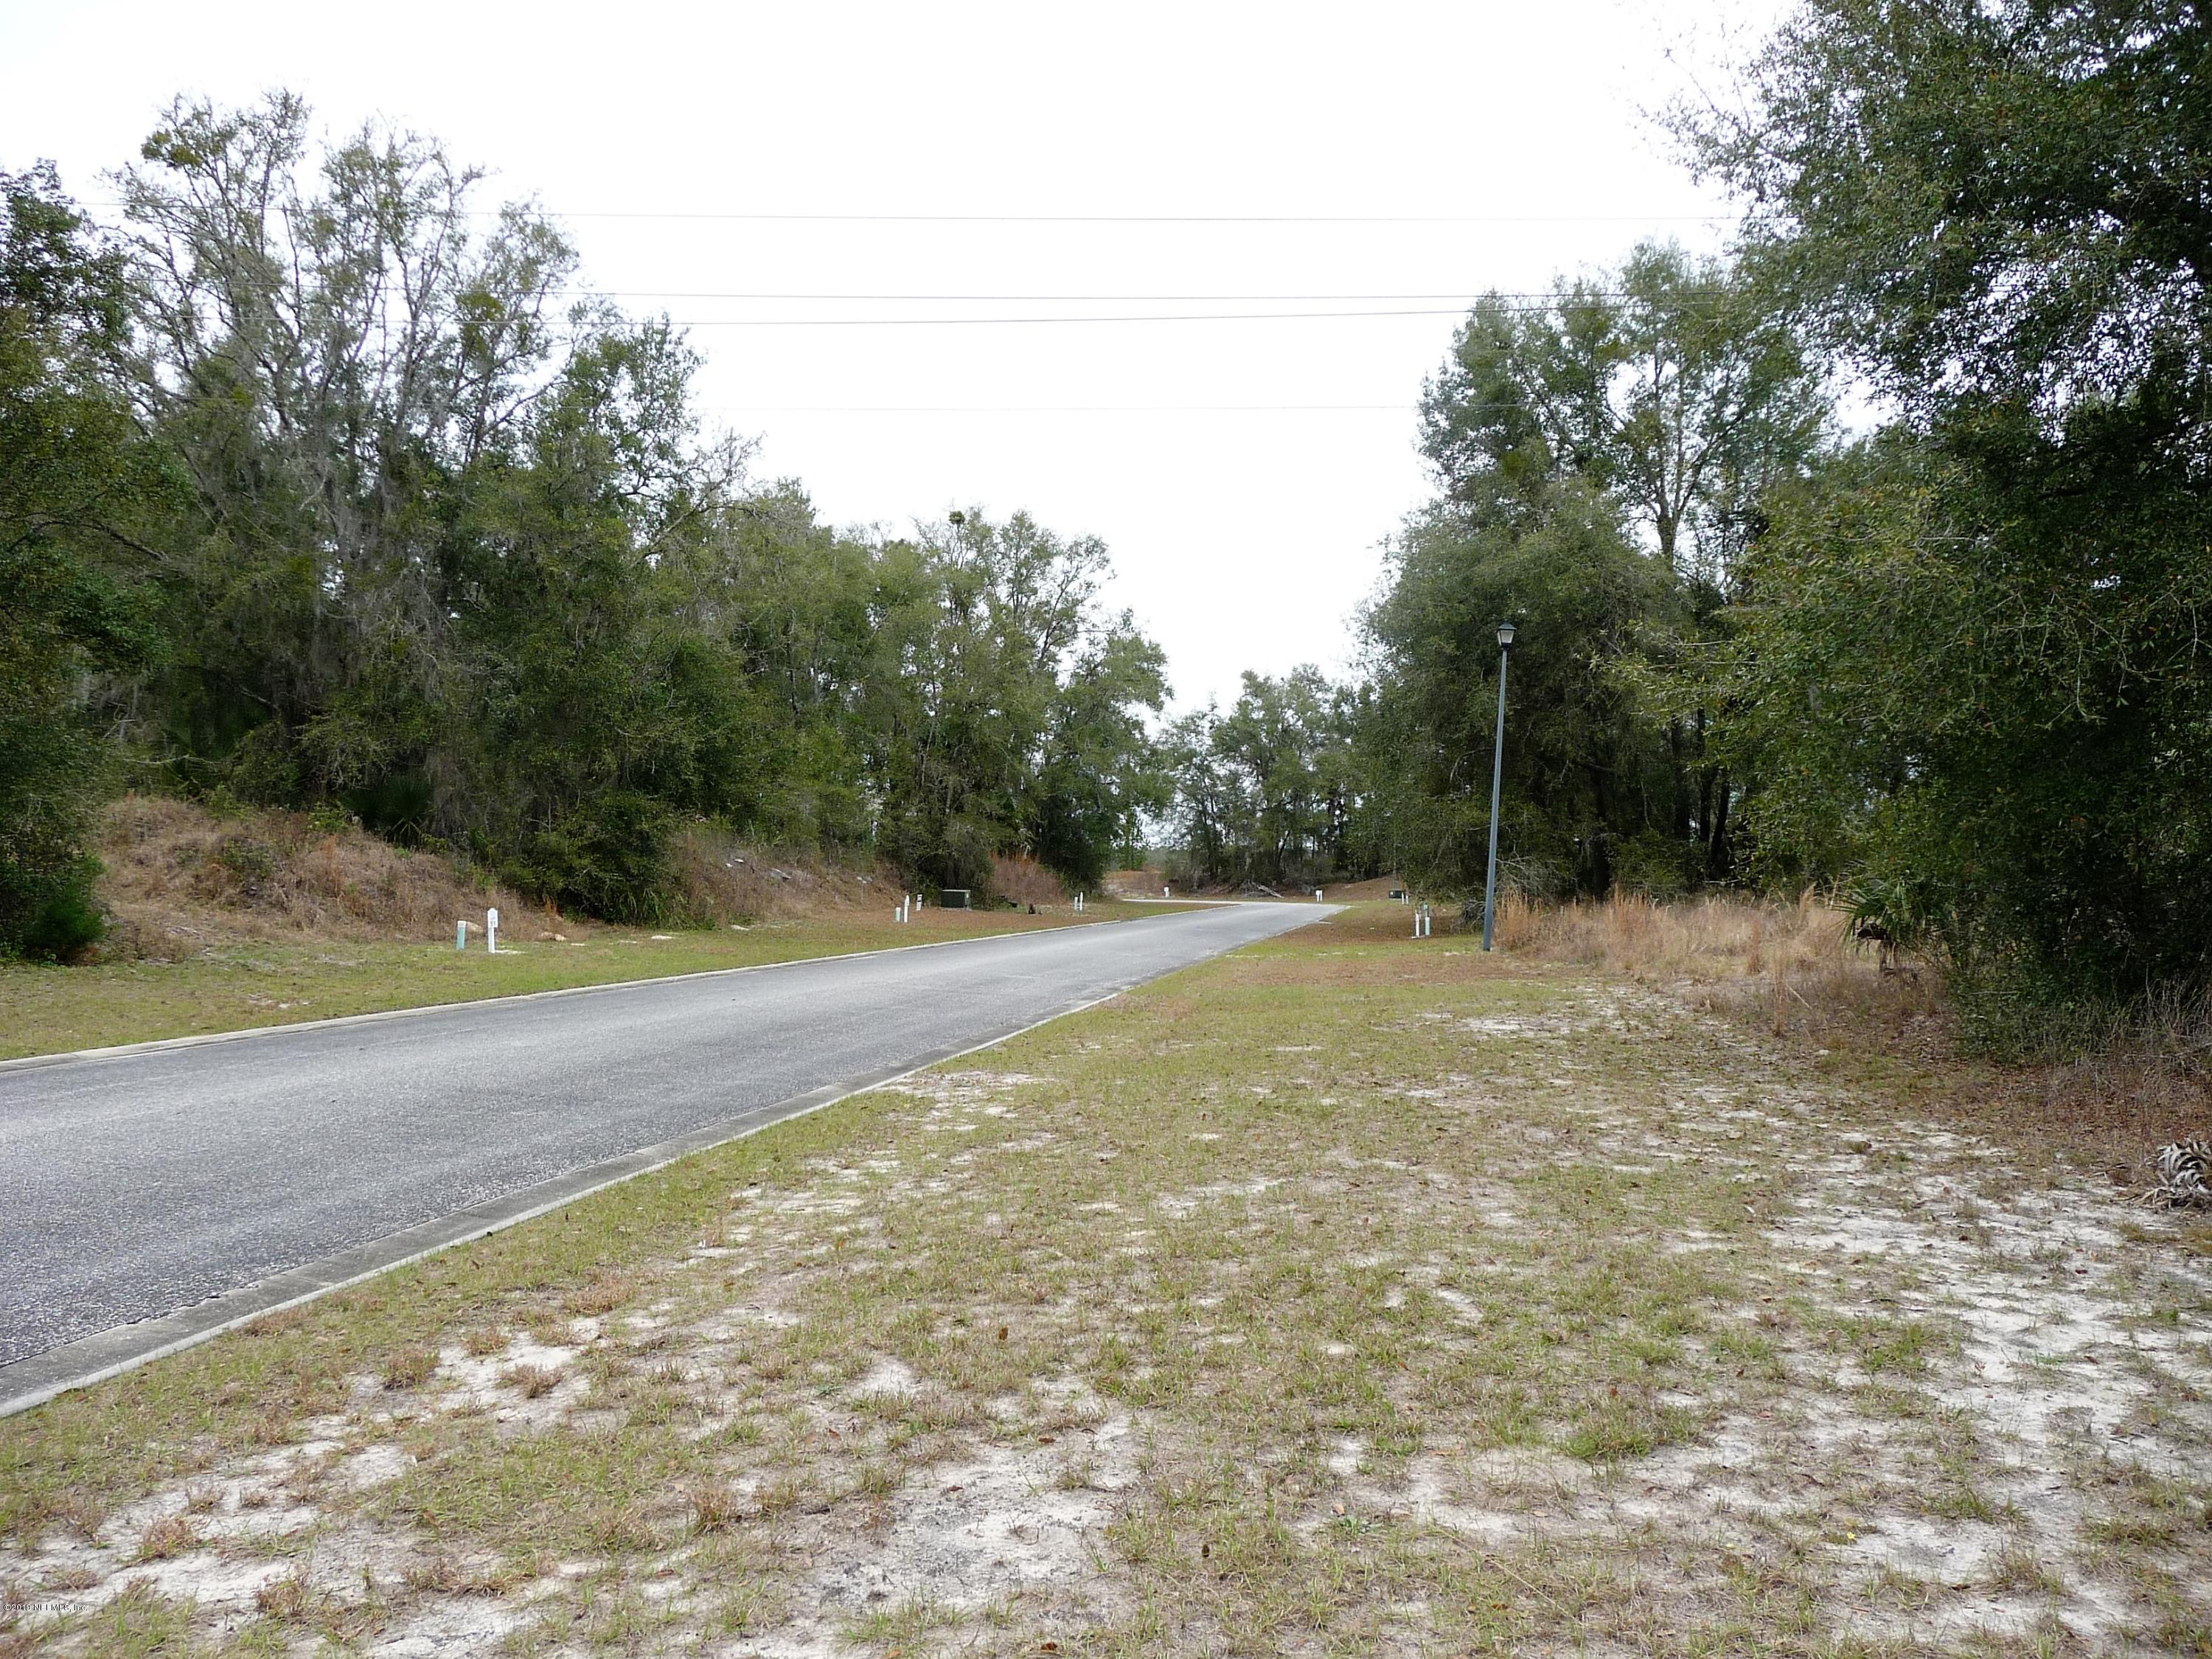 217 RIVER HILL, WELAKA, FLORIDA 32193, ,Vacant land,For sale,RIVER HILL,1059562